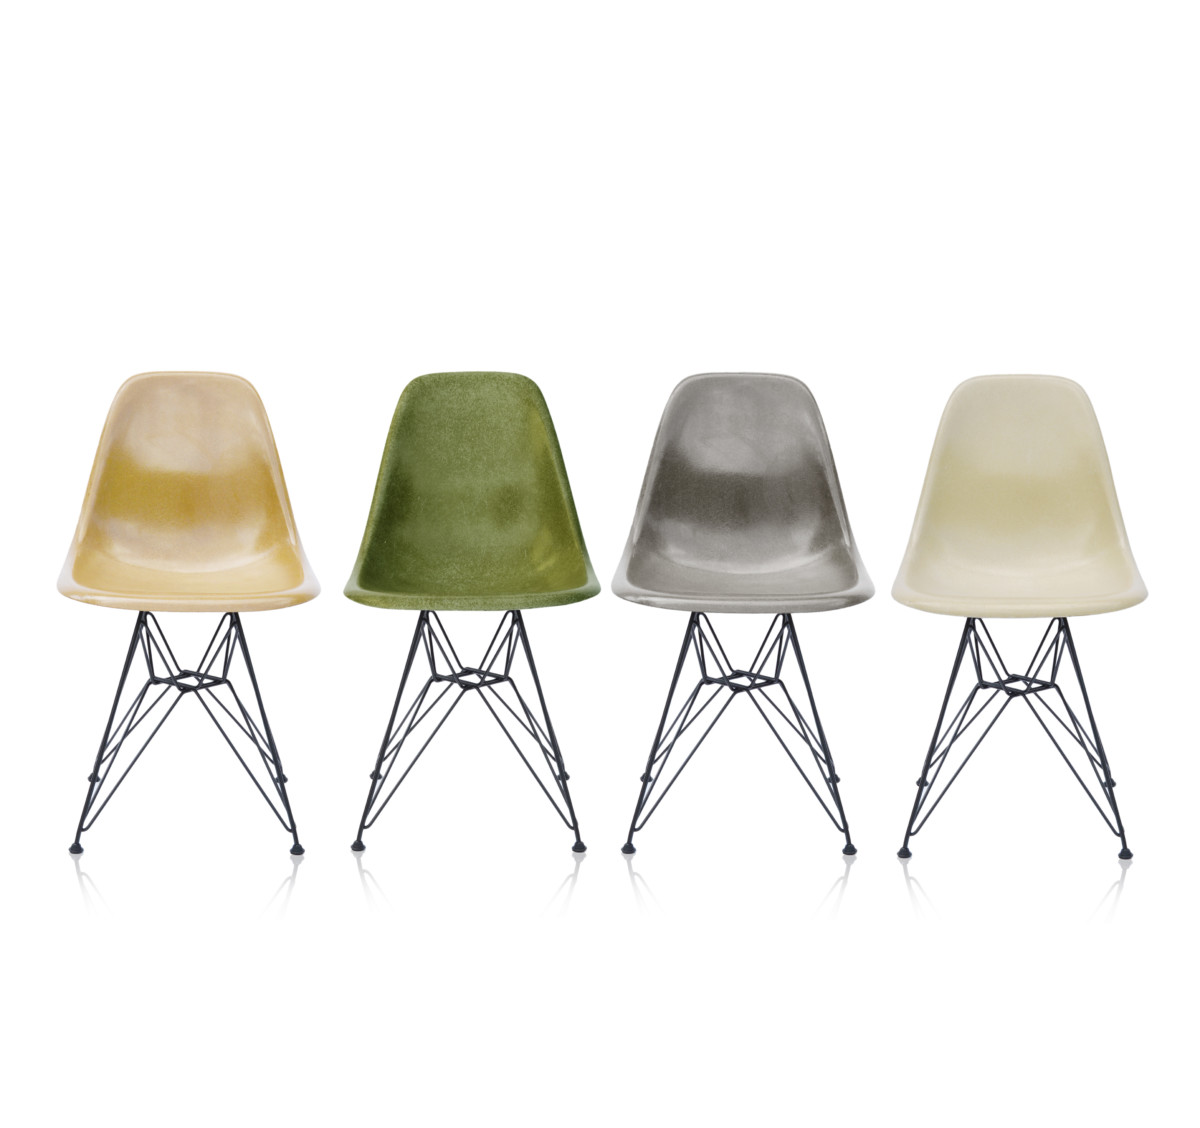 About A Chair 12 Side Chair.Vintage Eames Fiberglass Side Chairs Dsr Set 12 In Our Design